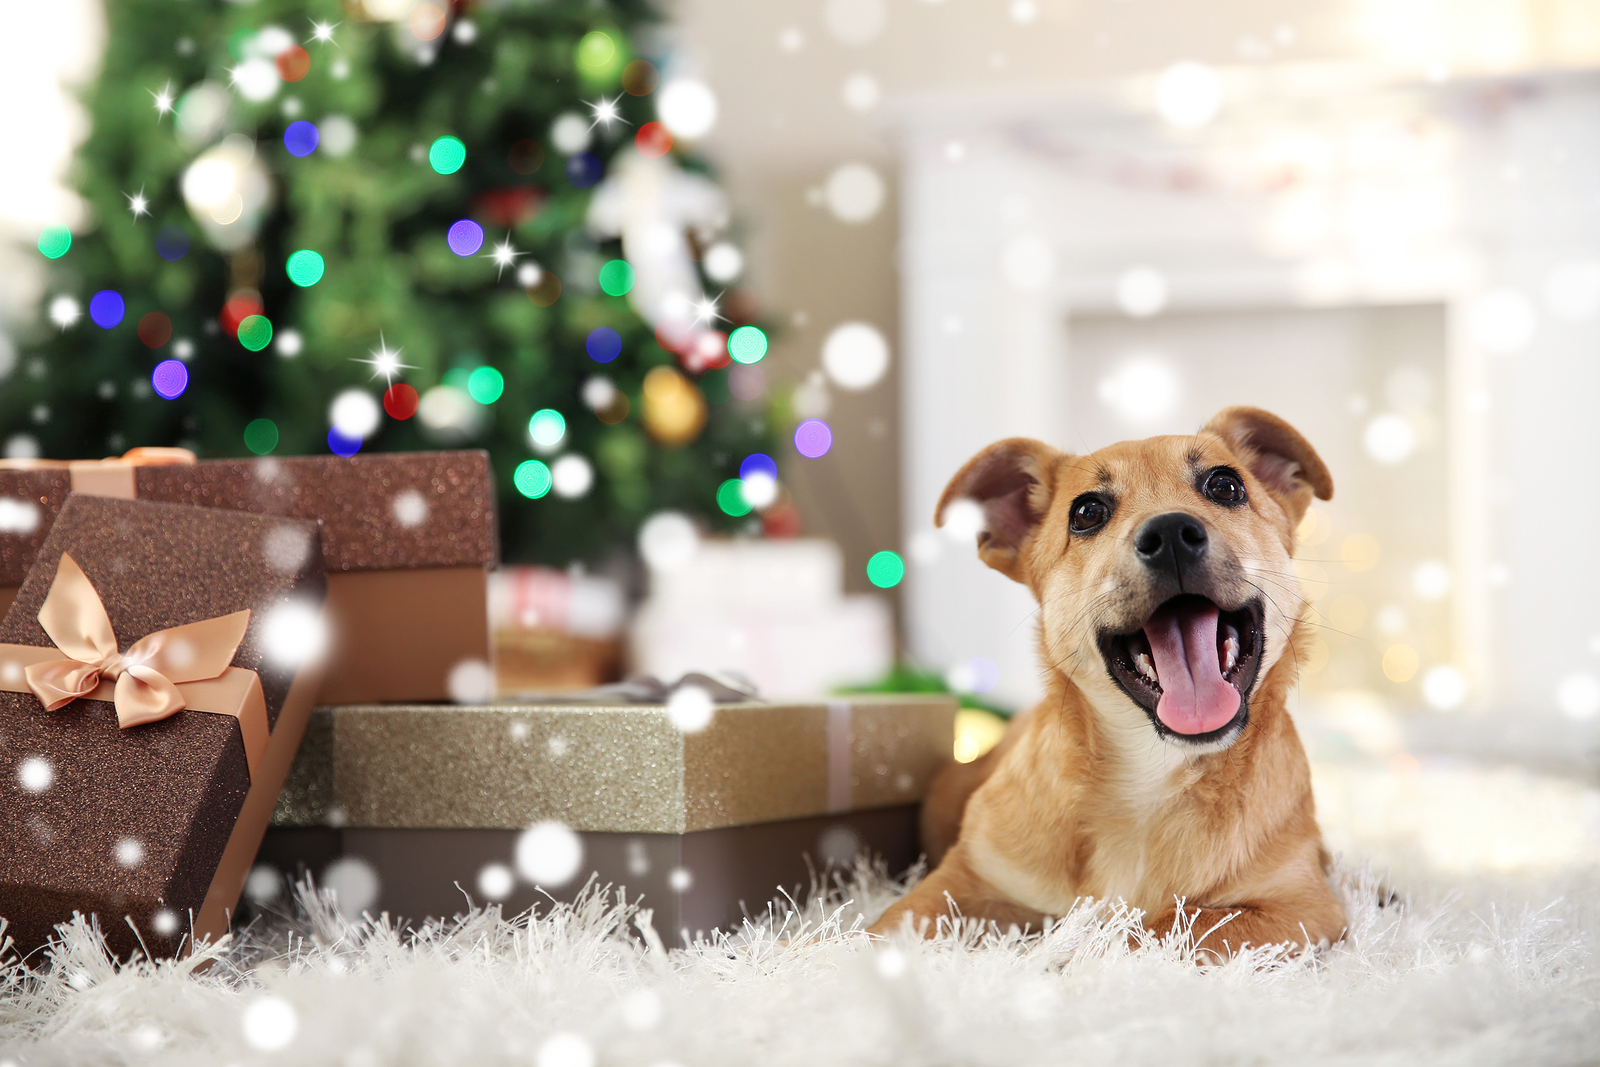 Forum on this topic: How to Involve a Pet in Christmas, how-to-involve-a-pet-in-christmas/